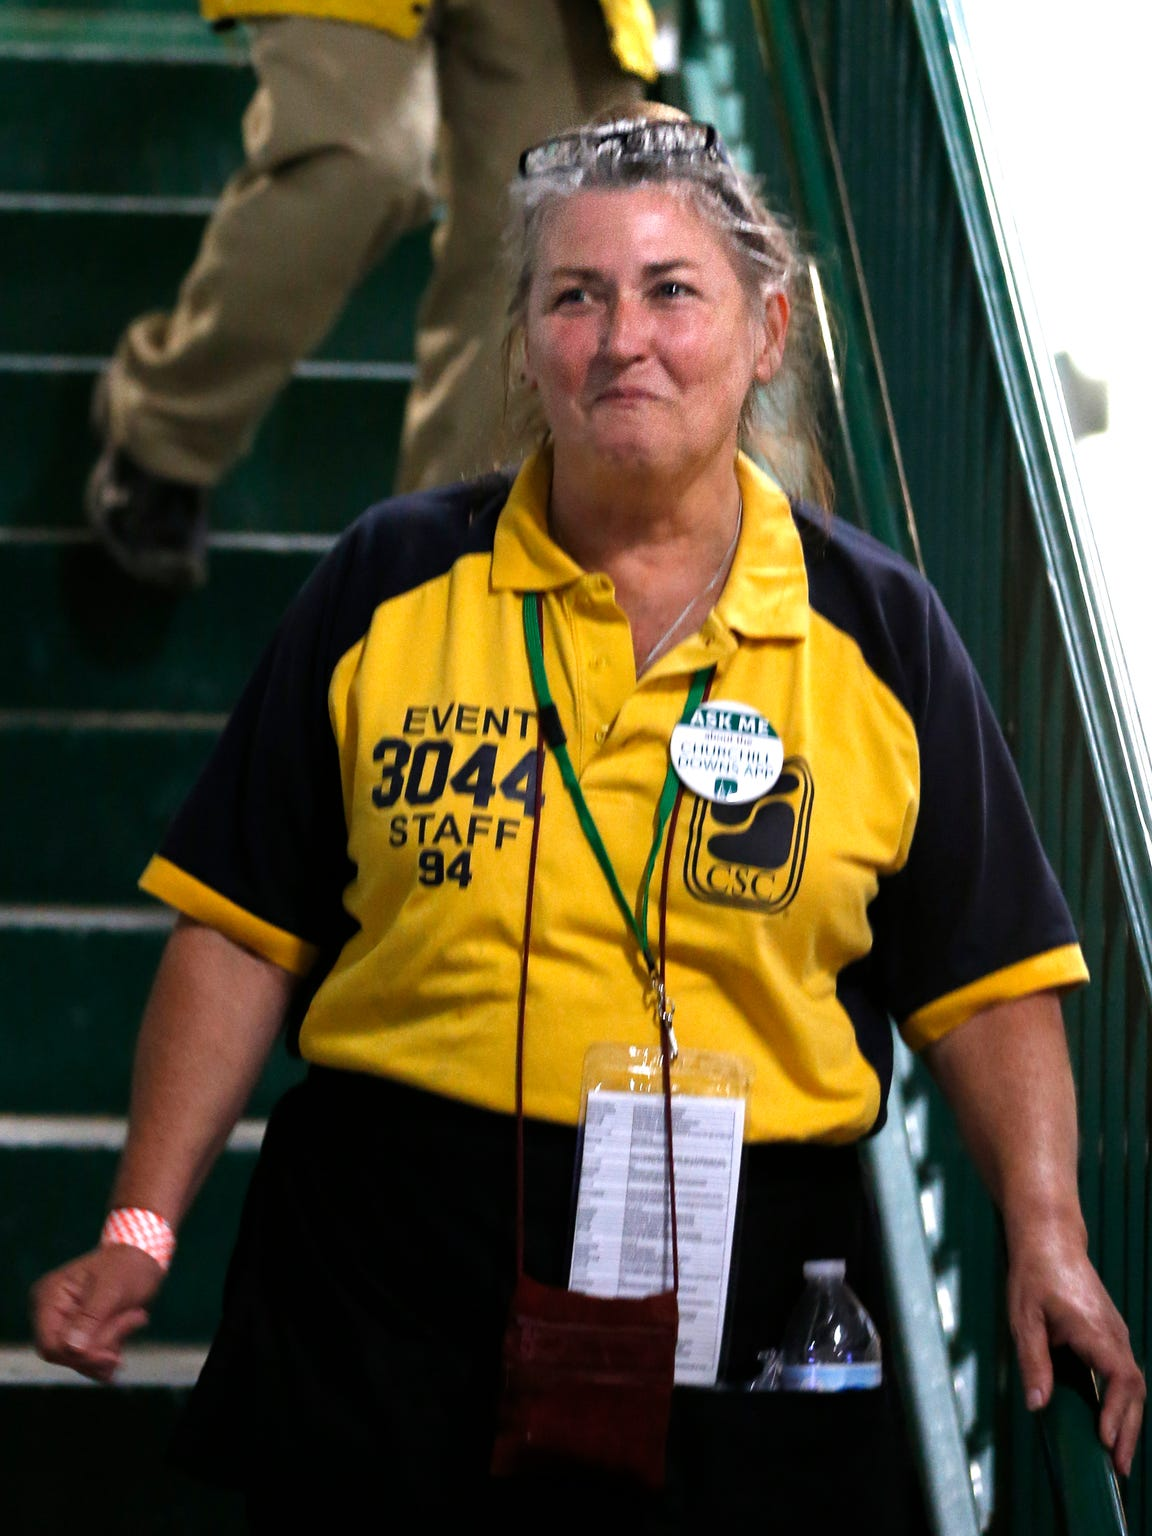 Pam Coats, 60, of Pleasure Ridge Park is for the first